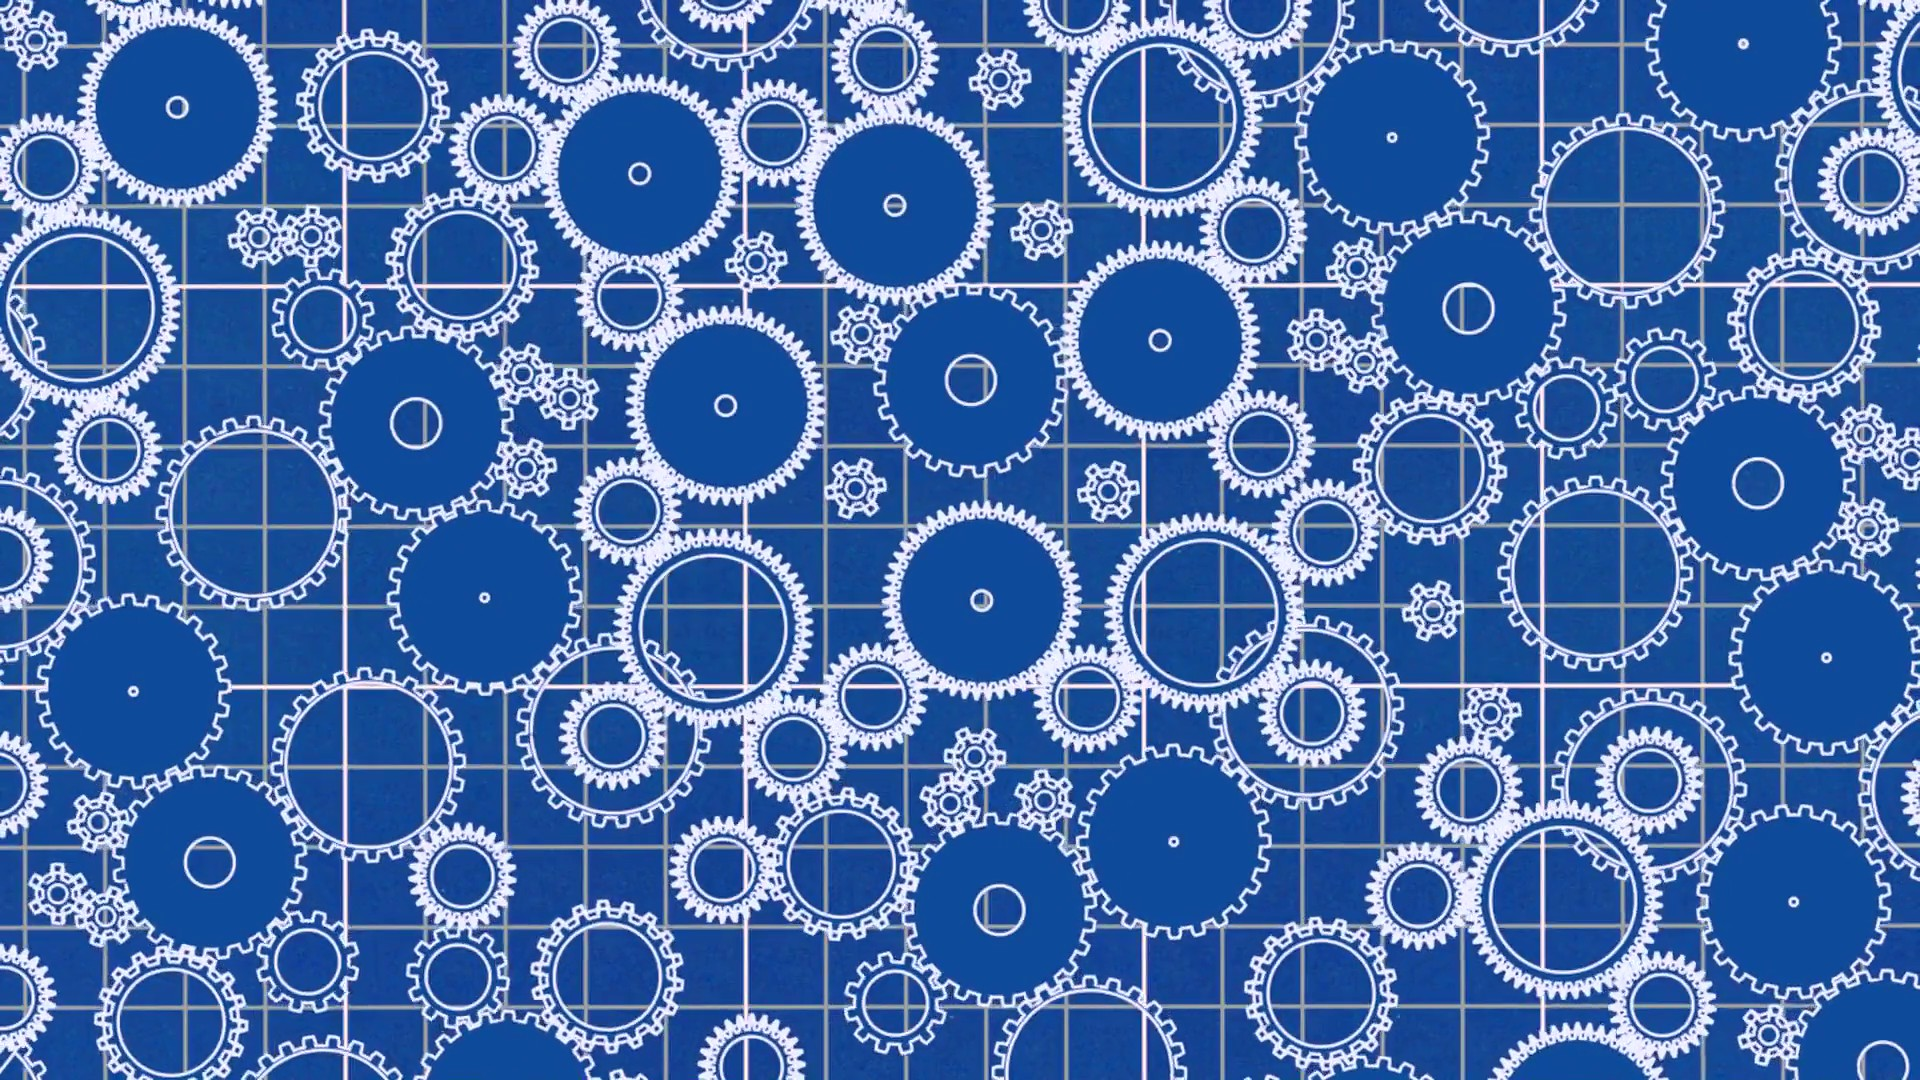 Blueprint background download free cool hd backgrounds for full size blueprint background 1920x1080 malvernweather Gallery